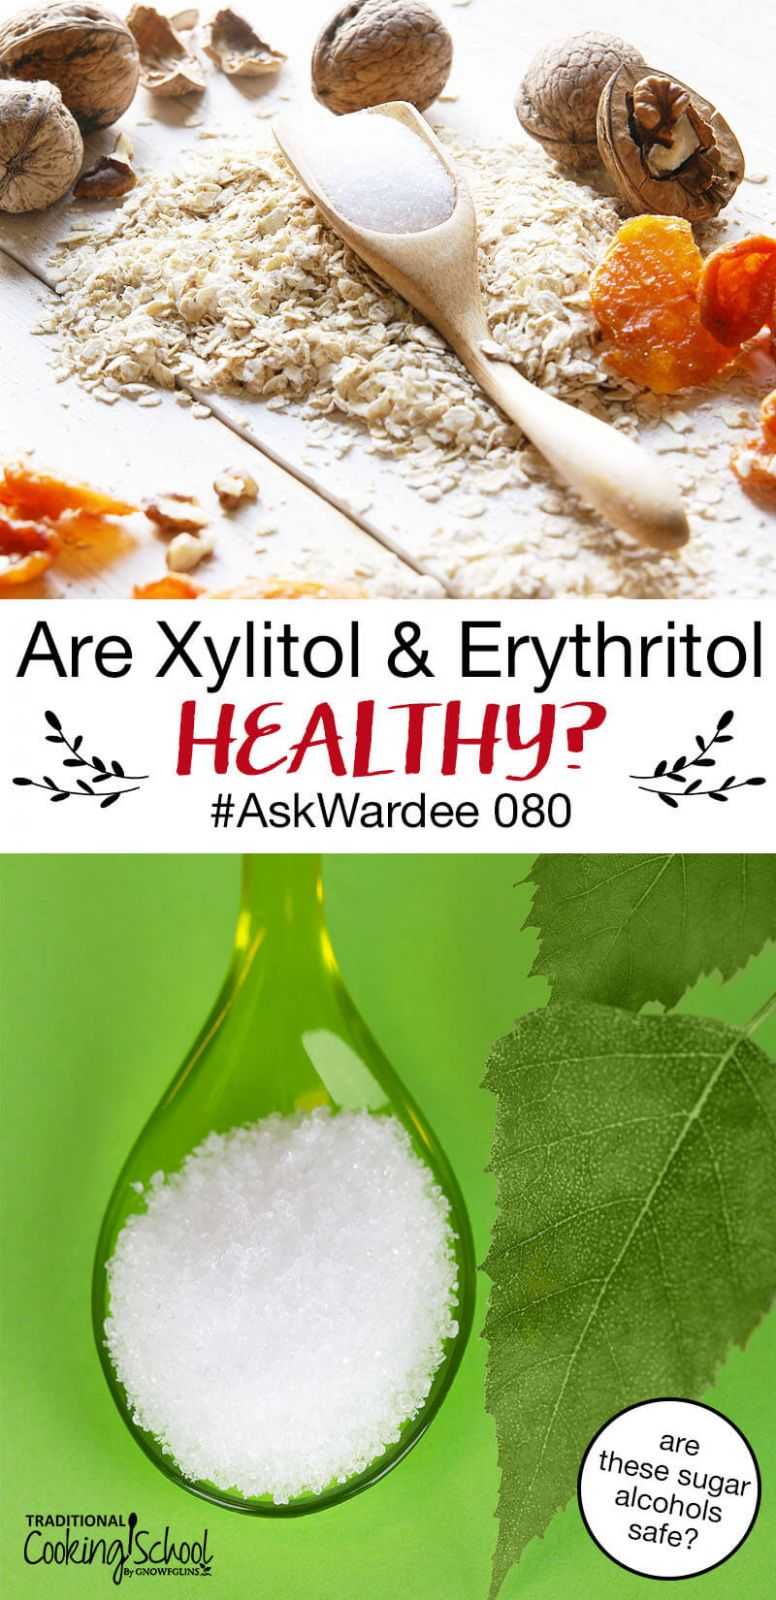 Are Xylitol And Erythritol Healthy? | Traditional Cooking School - Healthy Recipes With Xylitol